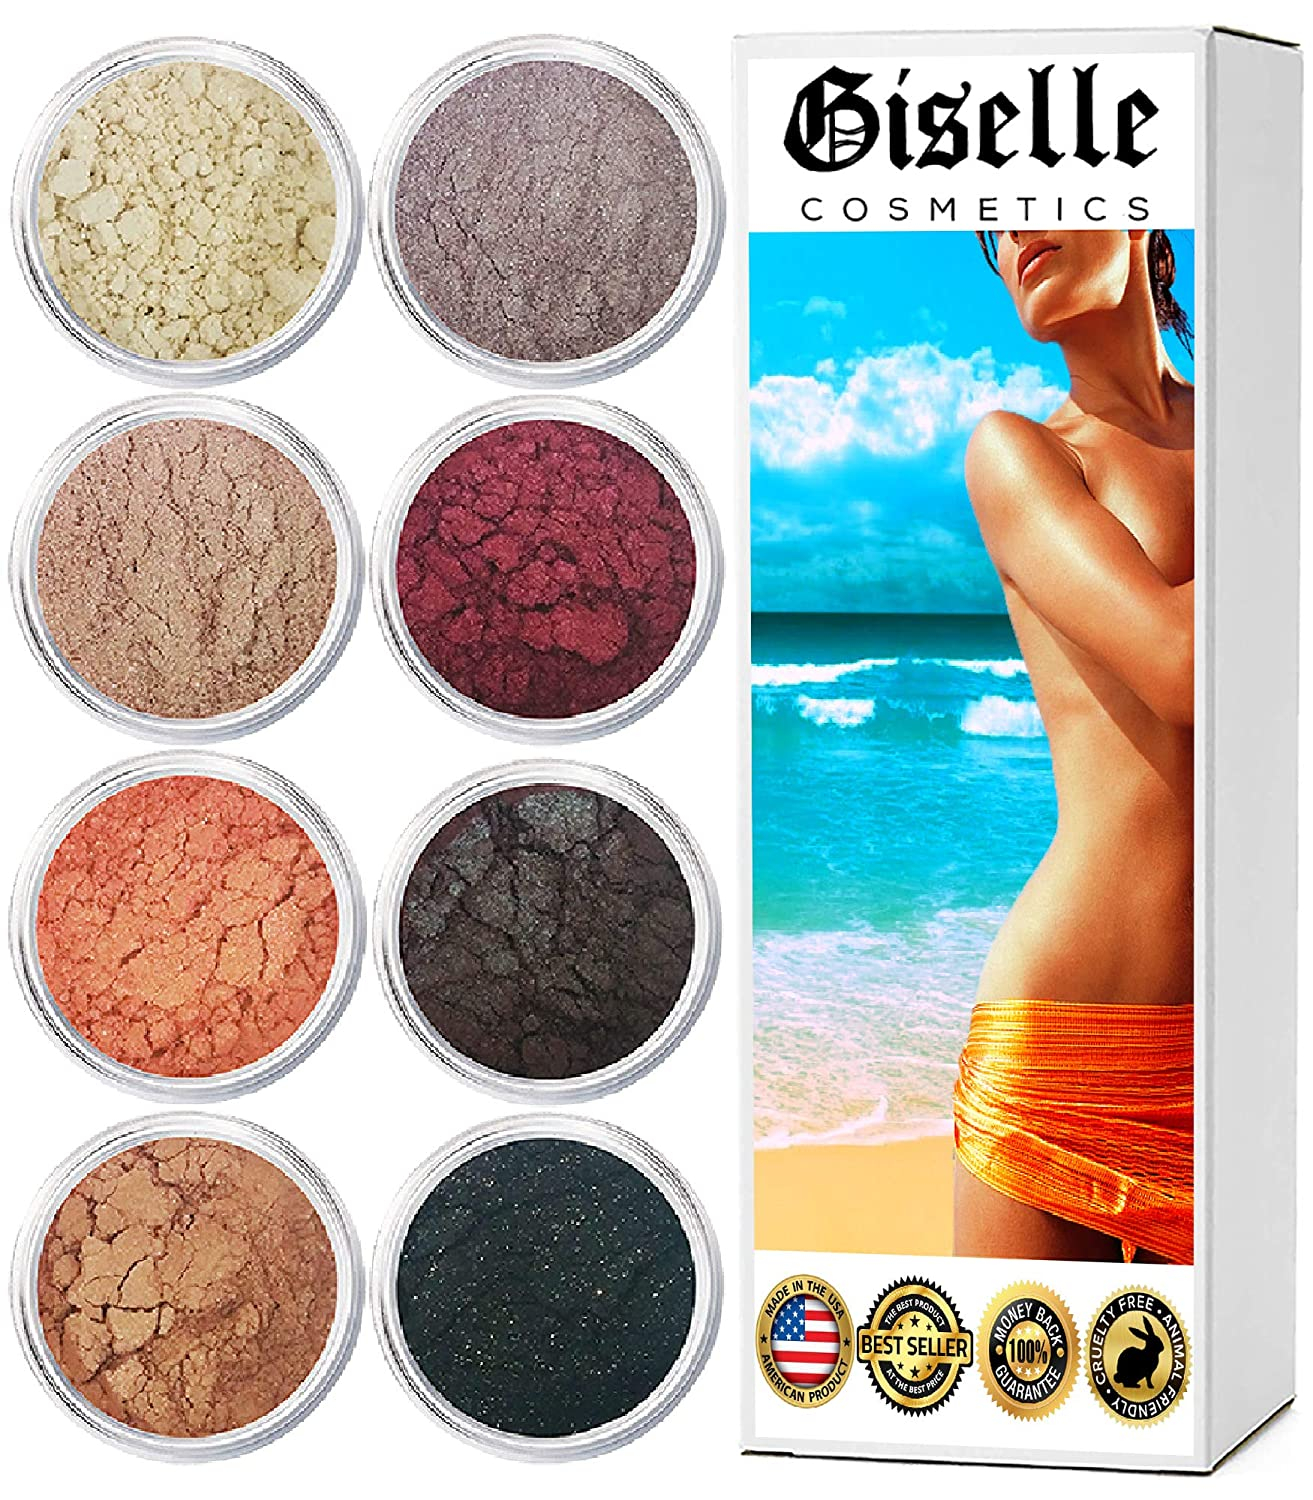 EyeShadow Palette - Mineral Makeup Eyeshadow Powder and Contouring Palette | Pure, Non-Diluted Shimmer Mineral Make Up in 8 Brown Eyed Hues and Shades